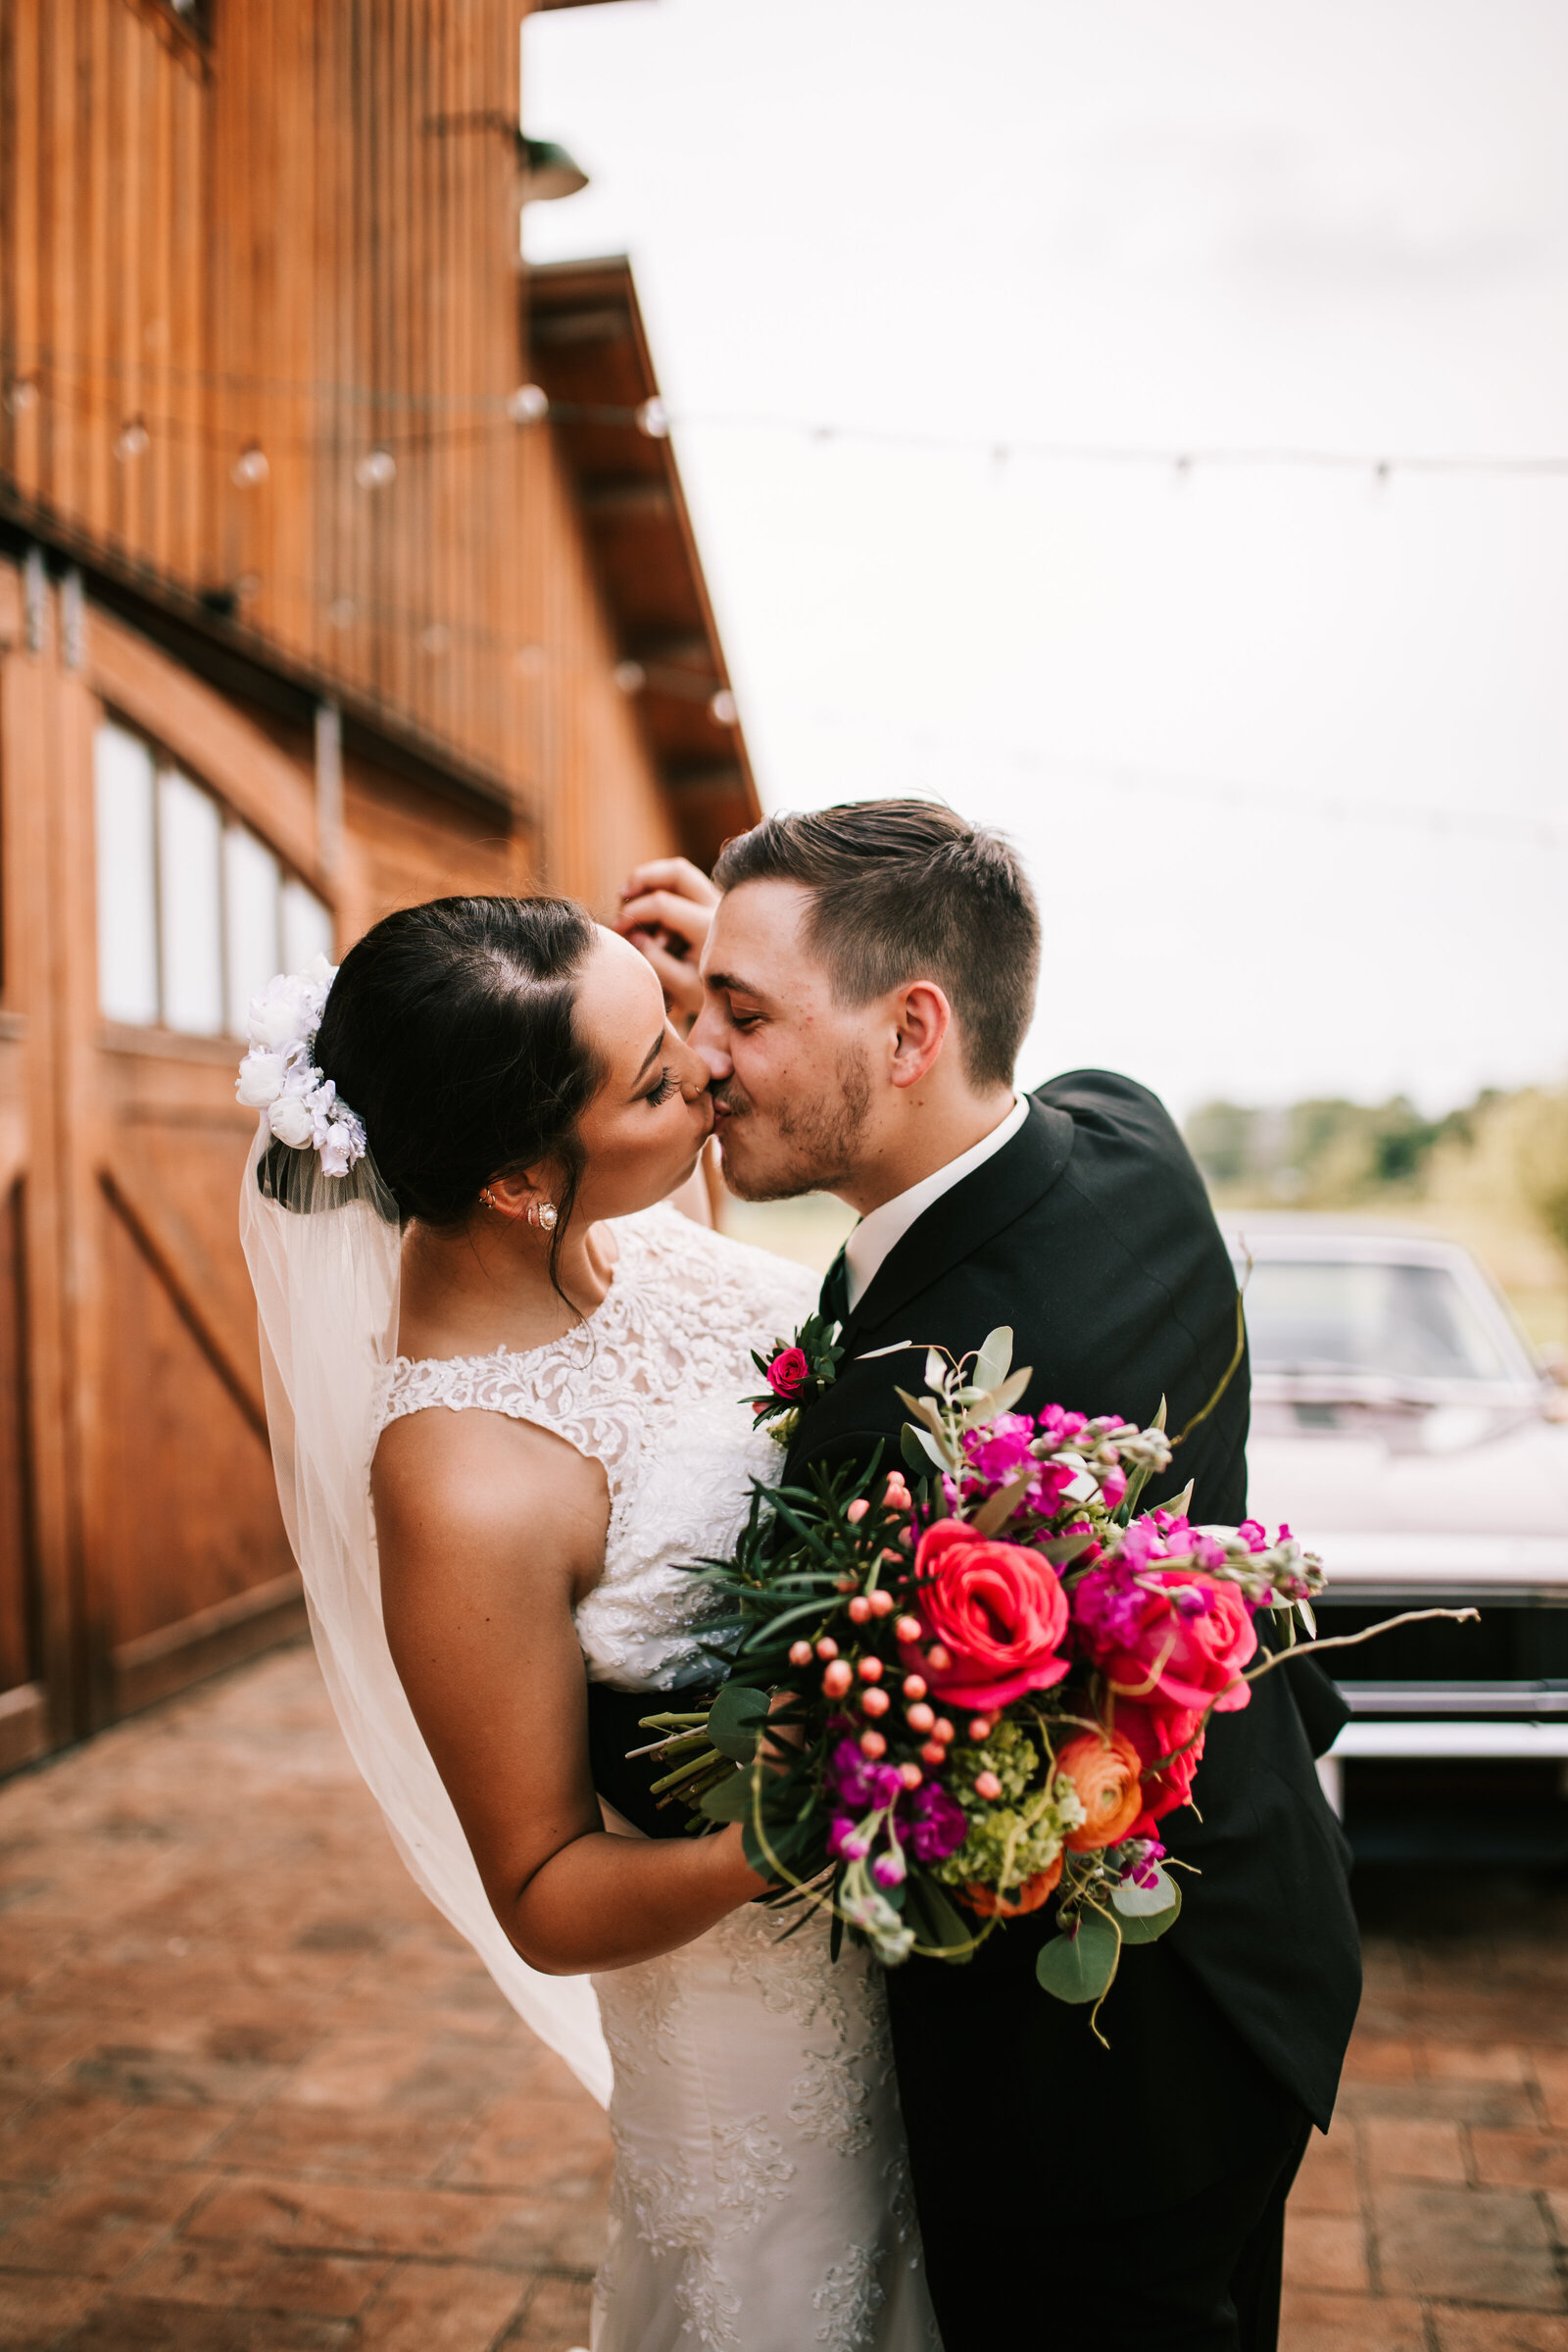 bride and groom wedding at a barn classic cars in back